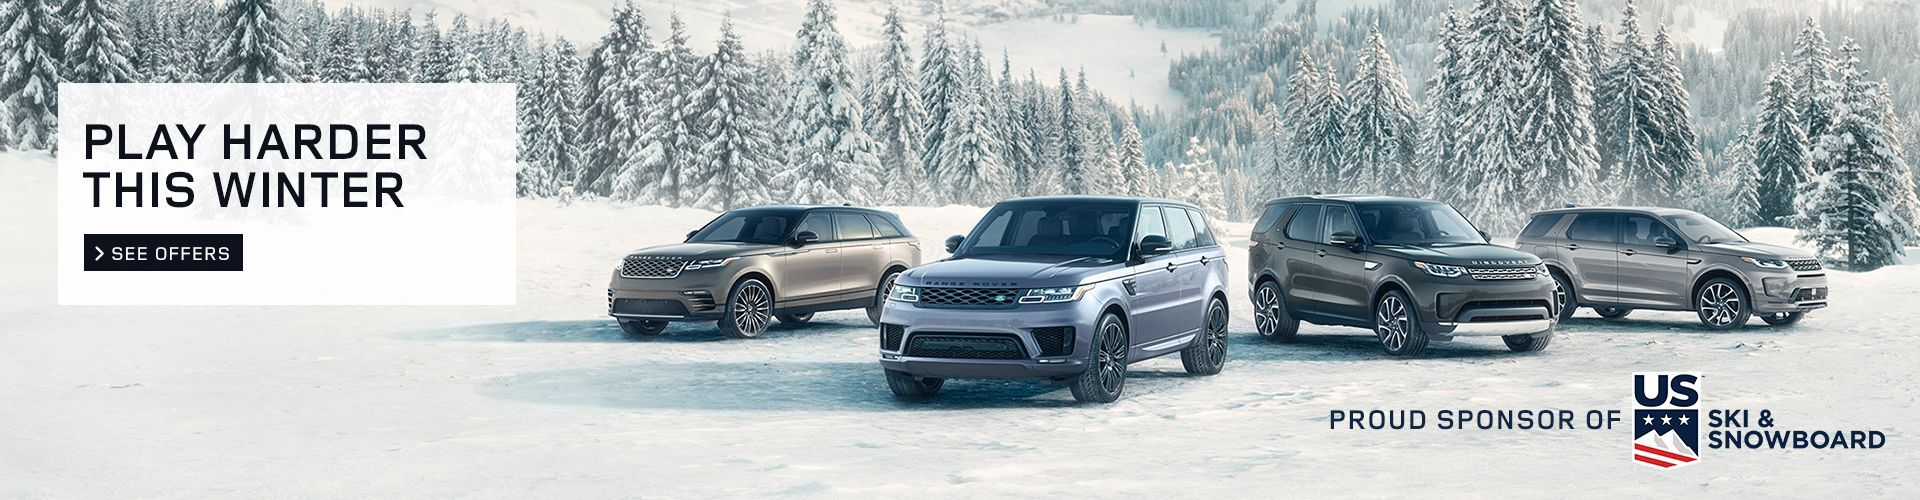 Land Rover Play Harder Winter Campaign